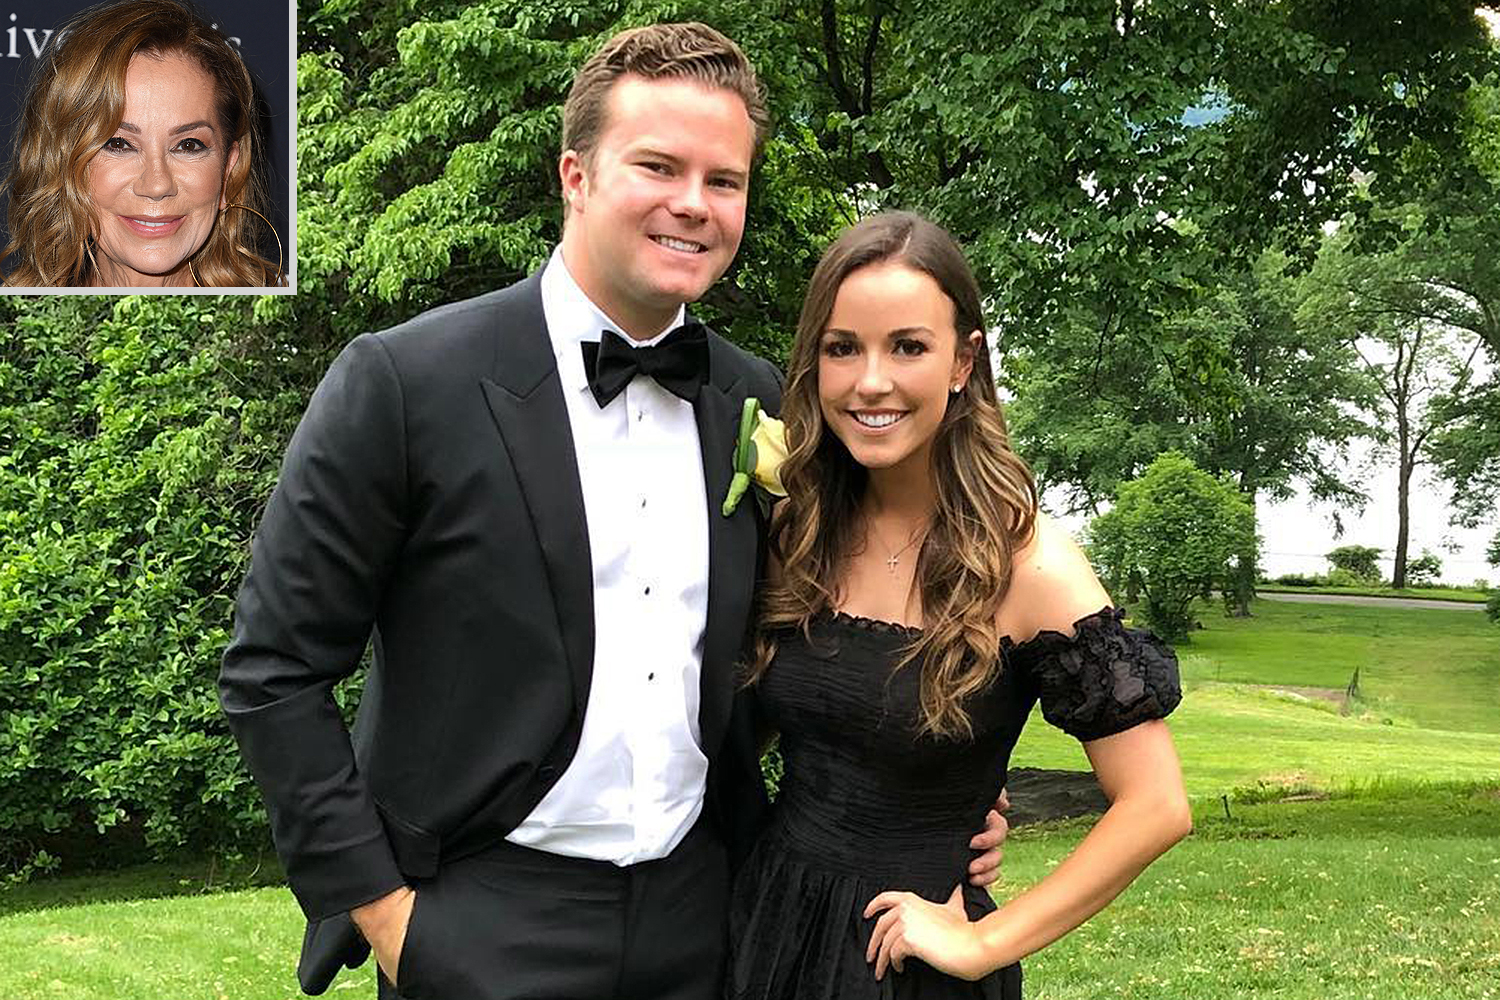 Cody and Erika Gifford married